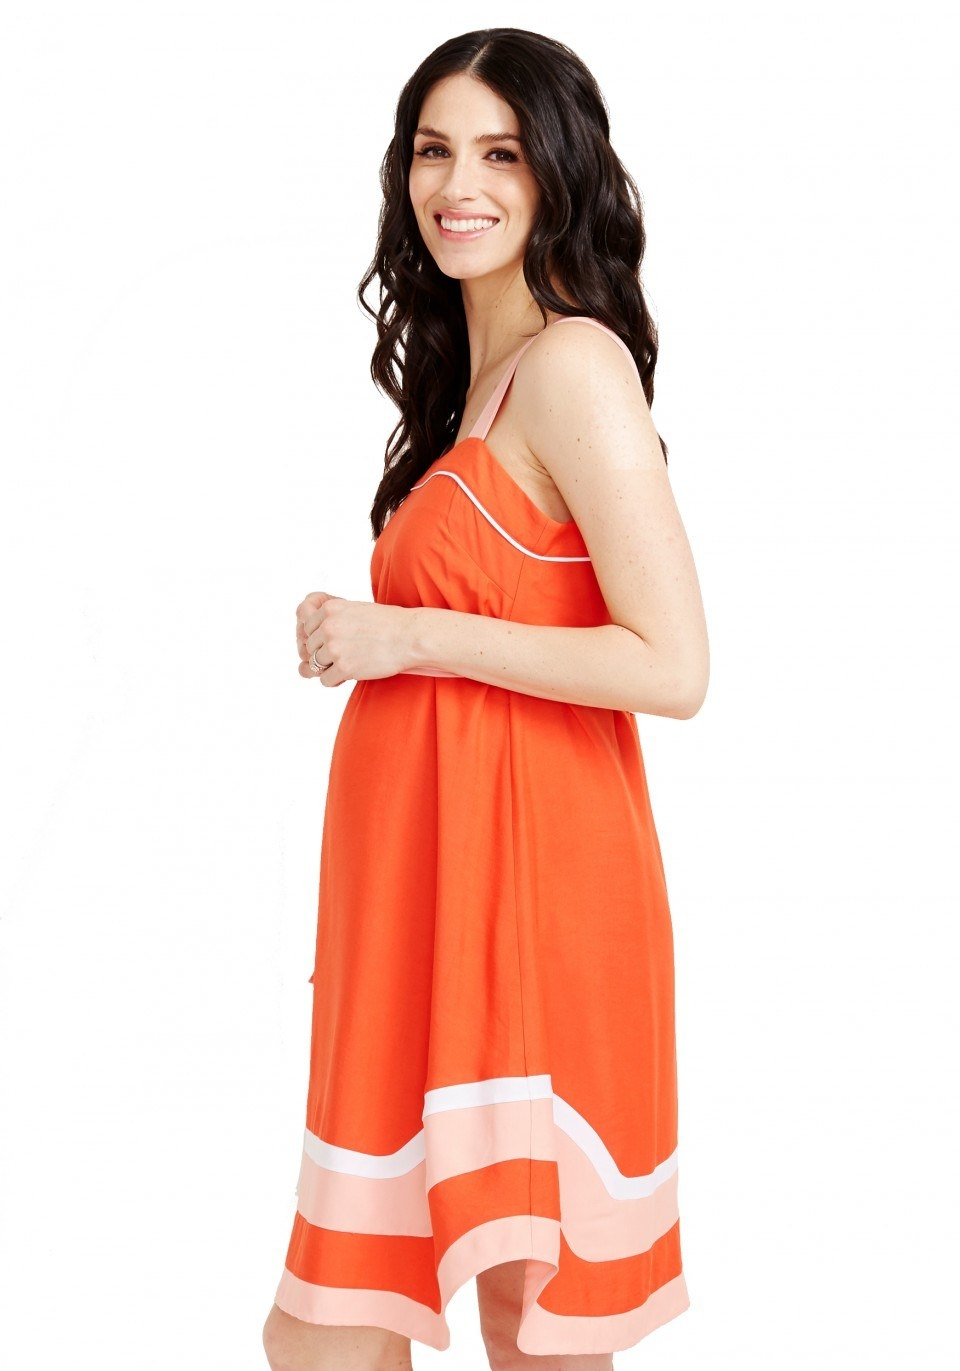 db8c09460d181 32 Of The Best Places To Buy Maternity Clothing Online